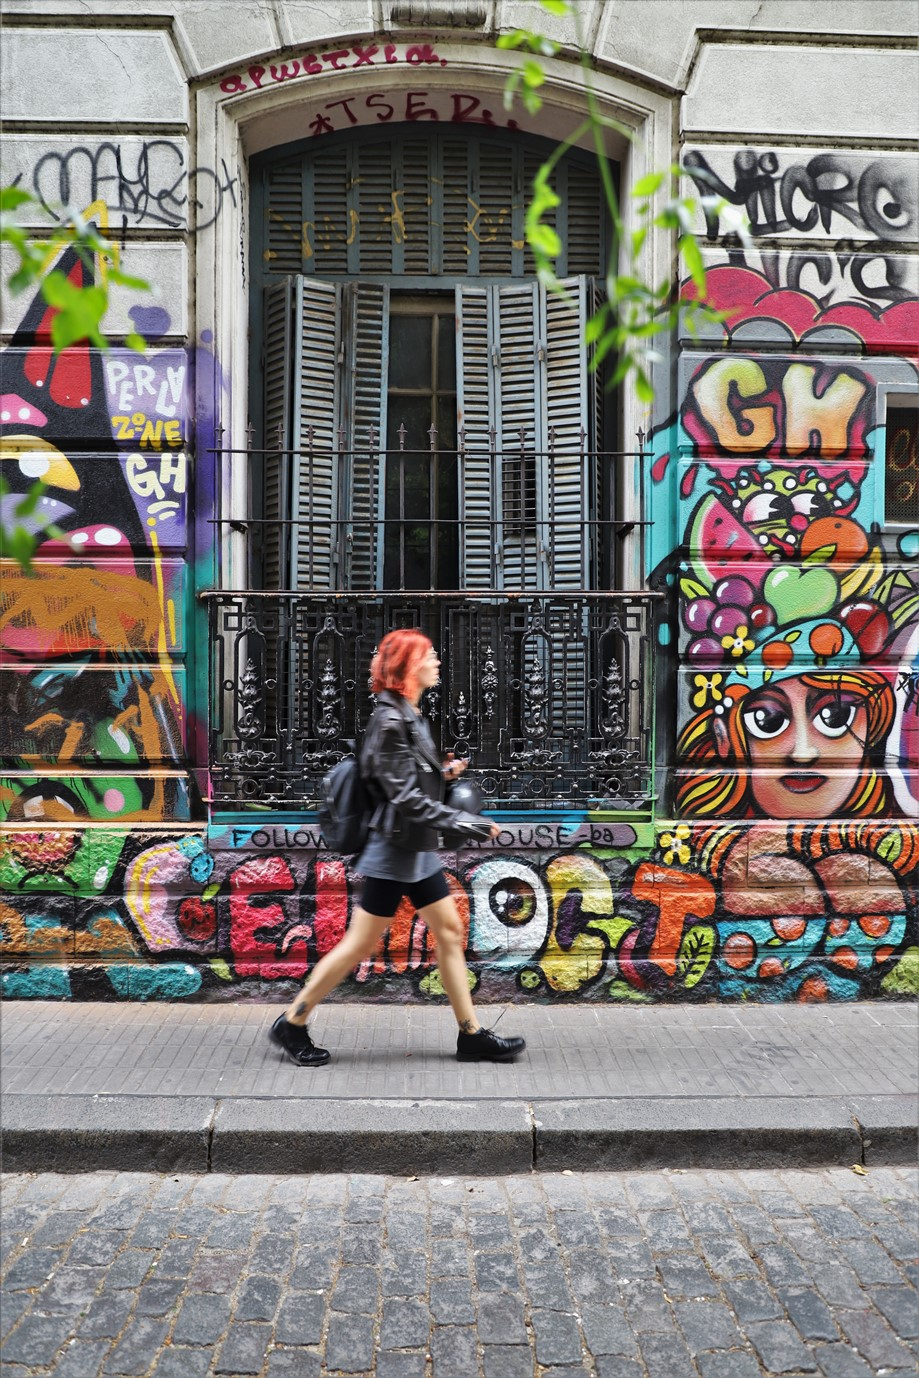 Buenos Aires – December 2019 – The People and Street Art of the Palermo Soho Barrio